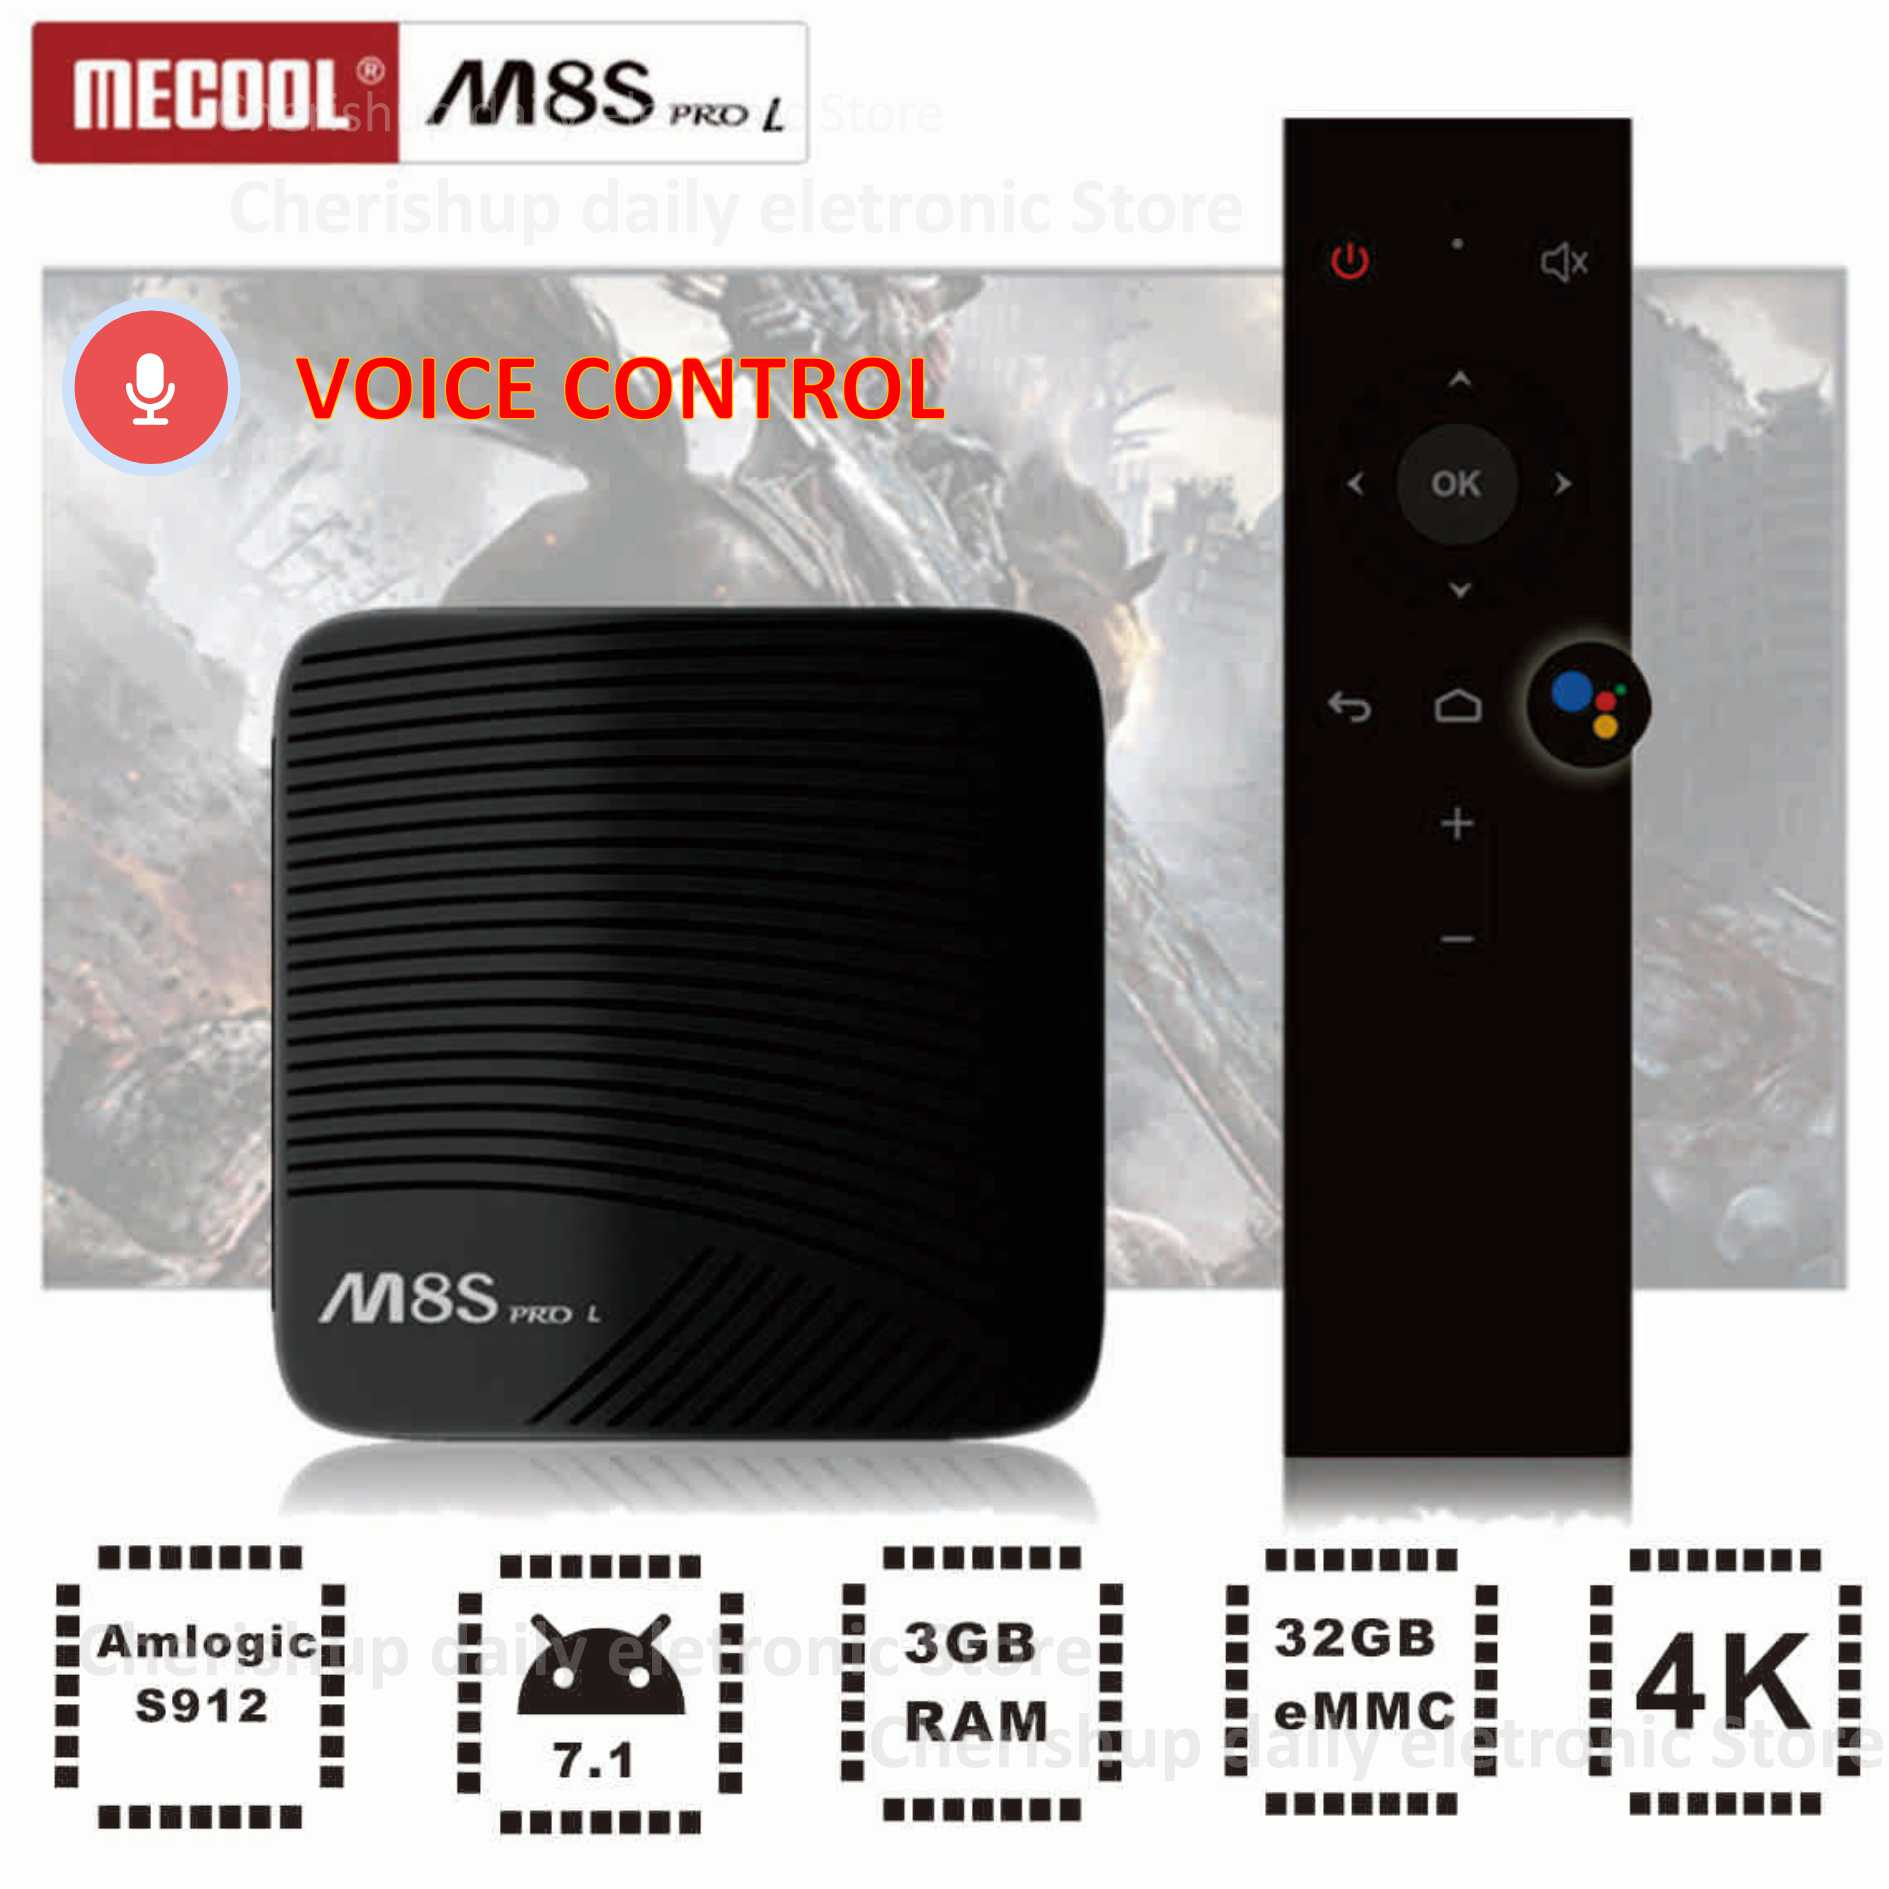 Mecool M8S PRO L Voice Control Smart TV Box Android 7.1 4K Amlogic S912 Octa Core Bluetooth Set-top Box HDMI 3GB 32GB mecool m8s pro l 4k tv box android 7 1 smart tv box 3gb 16gb amlogic s912 cortex a53 cpu bluetooth 4 1 hs with voice control